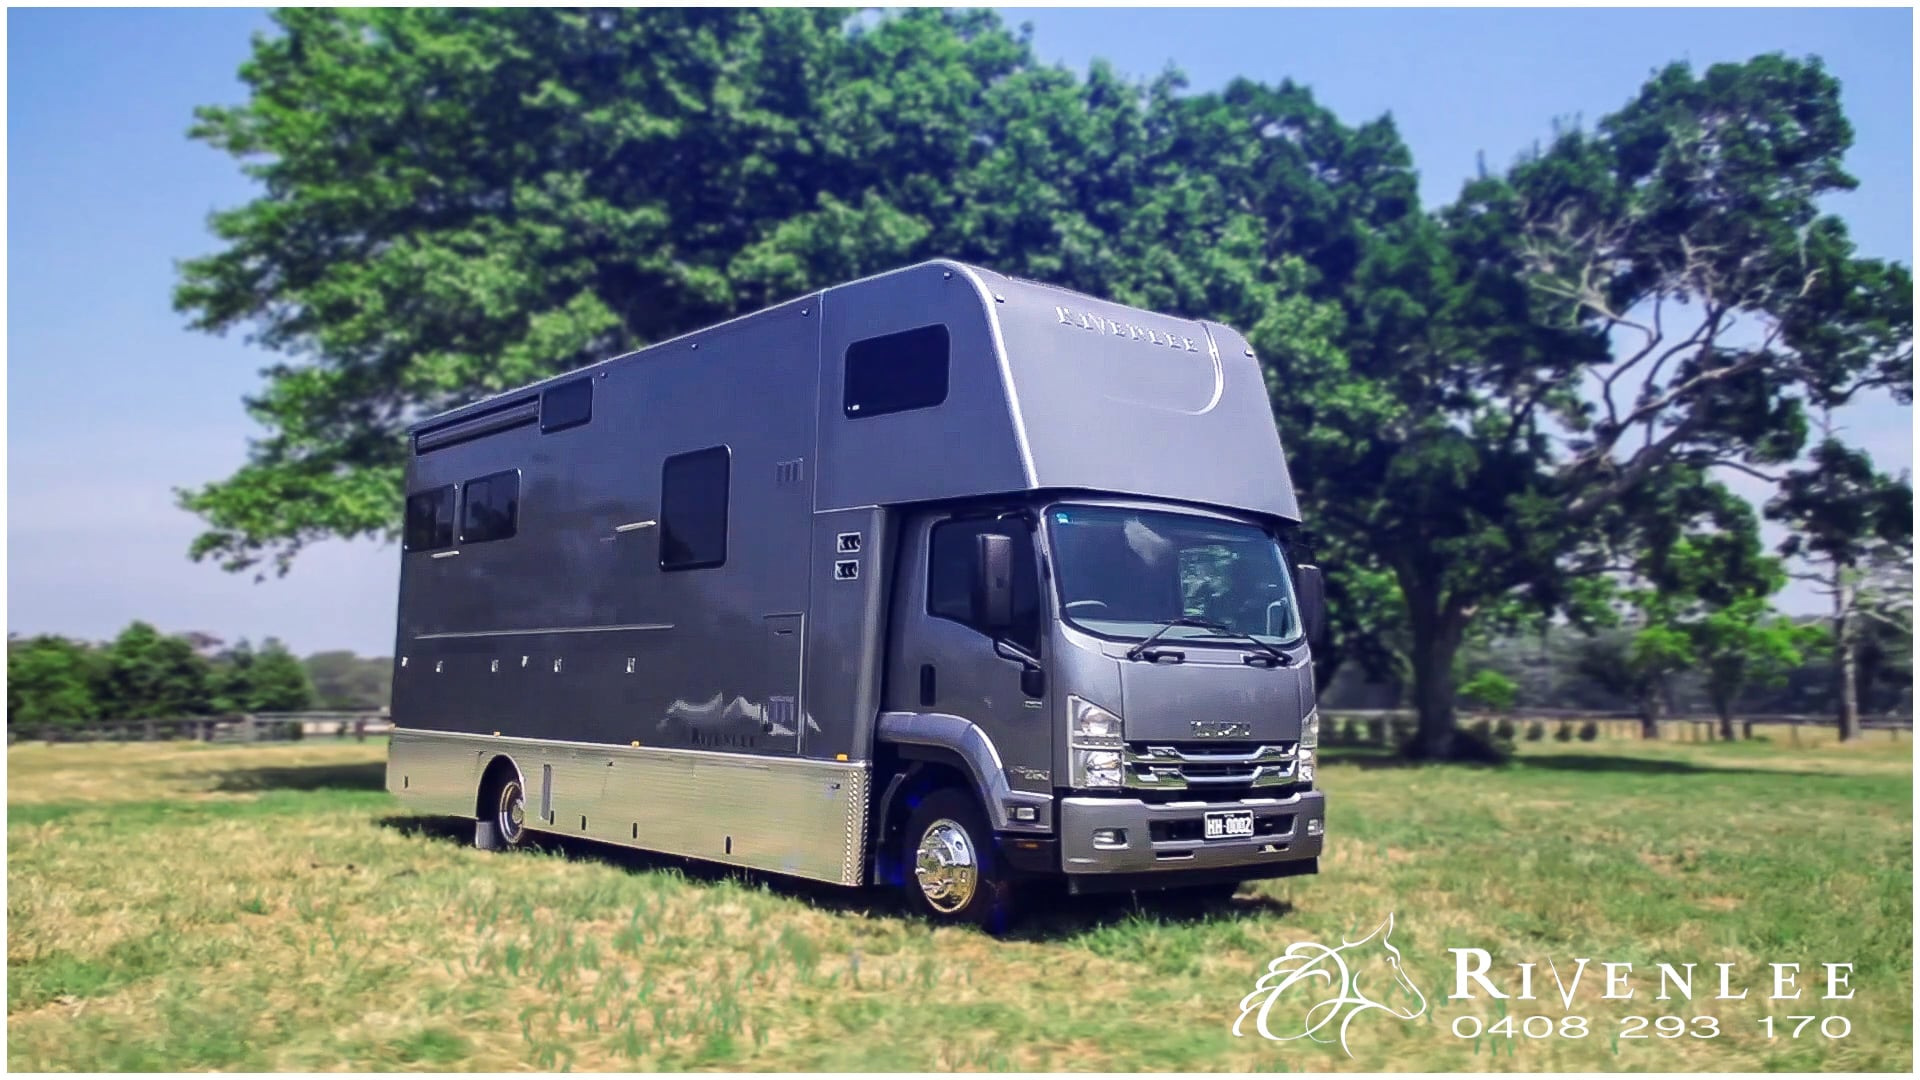 Rivenlee Horse Truck - Lifestyle